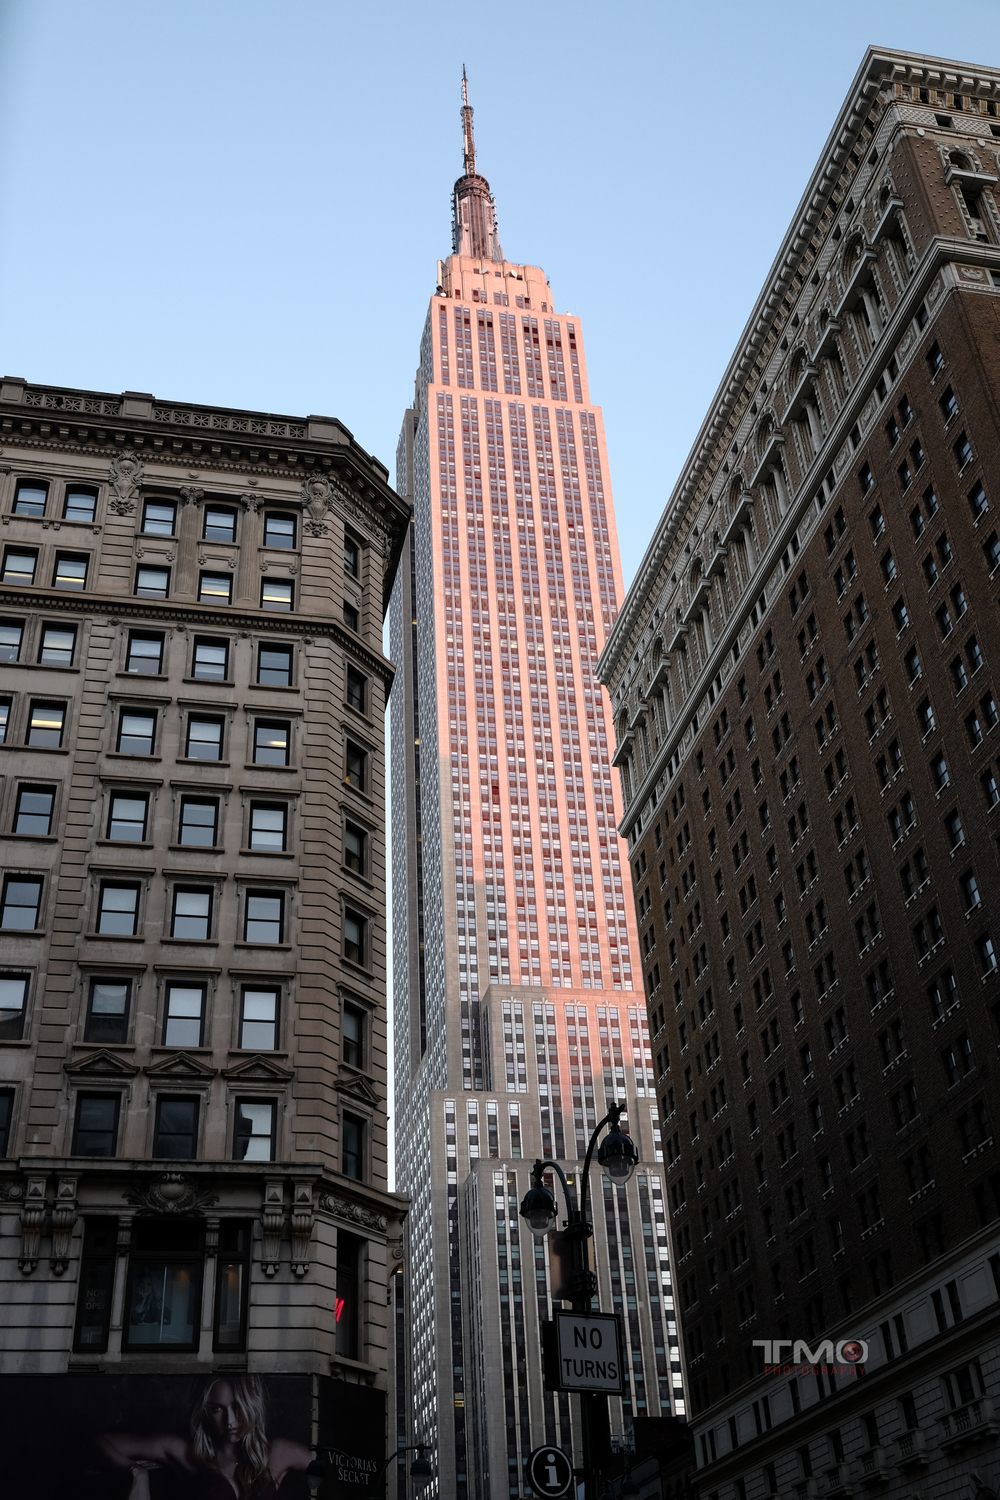 Empire State building from the corner of 34th Street.